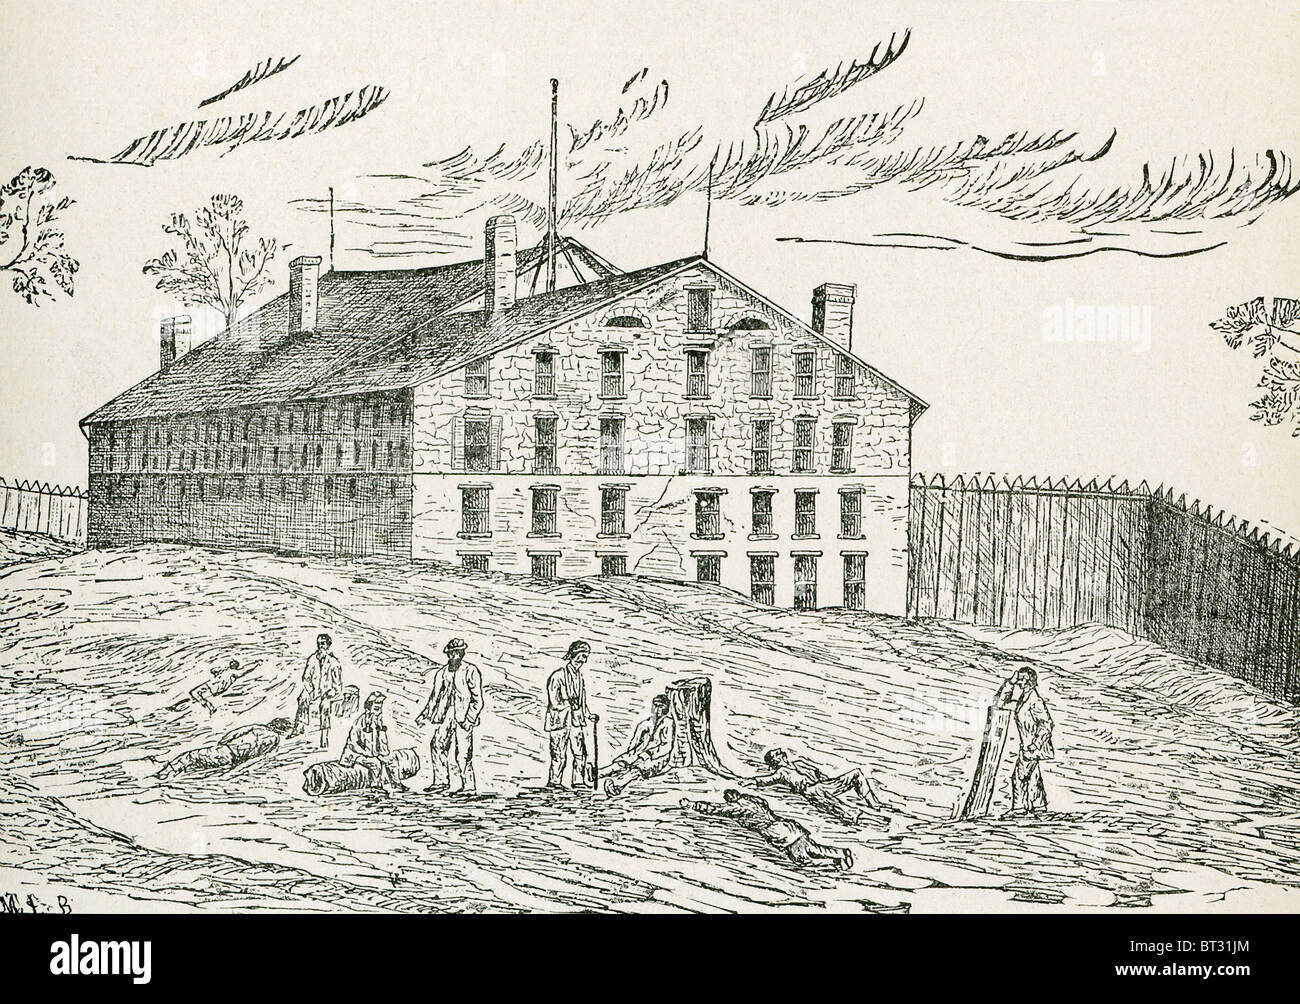 Libby Prison, which was built 1845-1852 in Richmond, Virginia, was used by the Confederates during the American - Stock Image